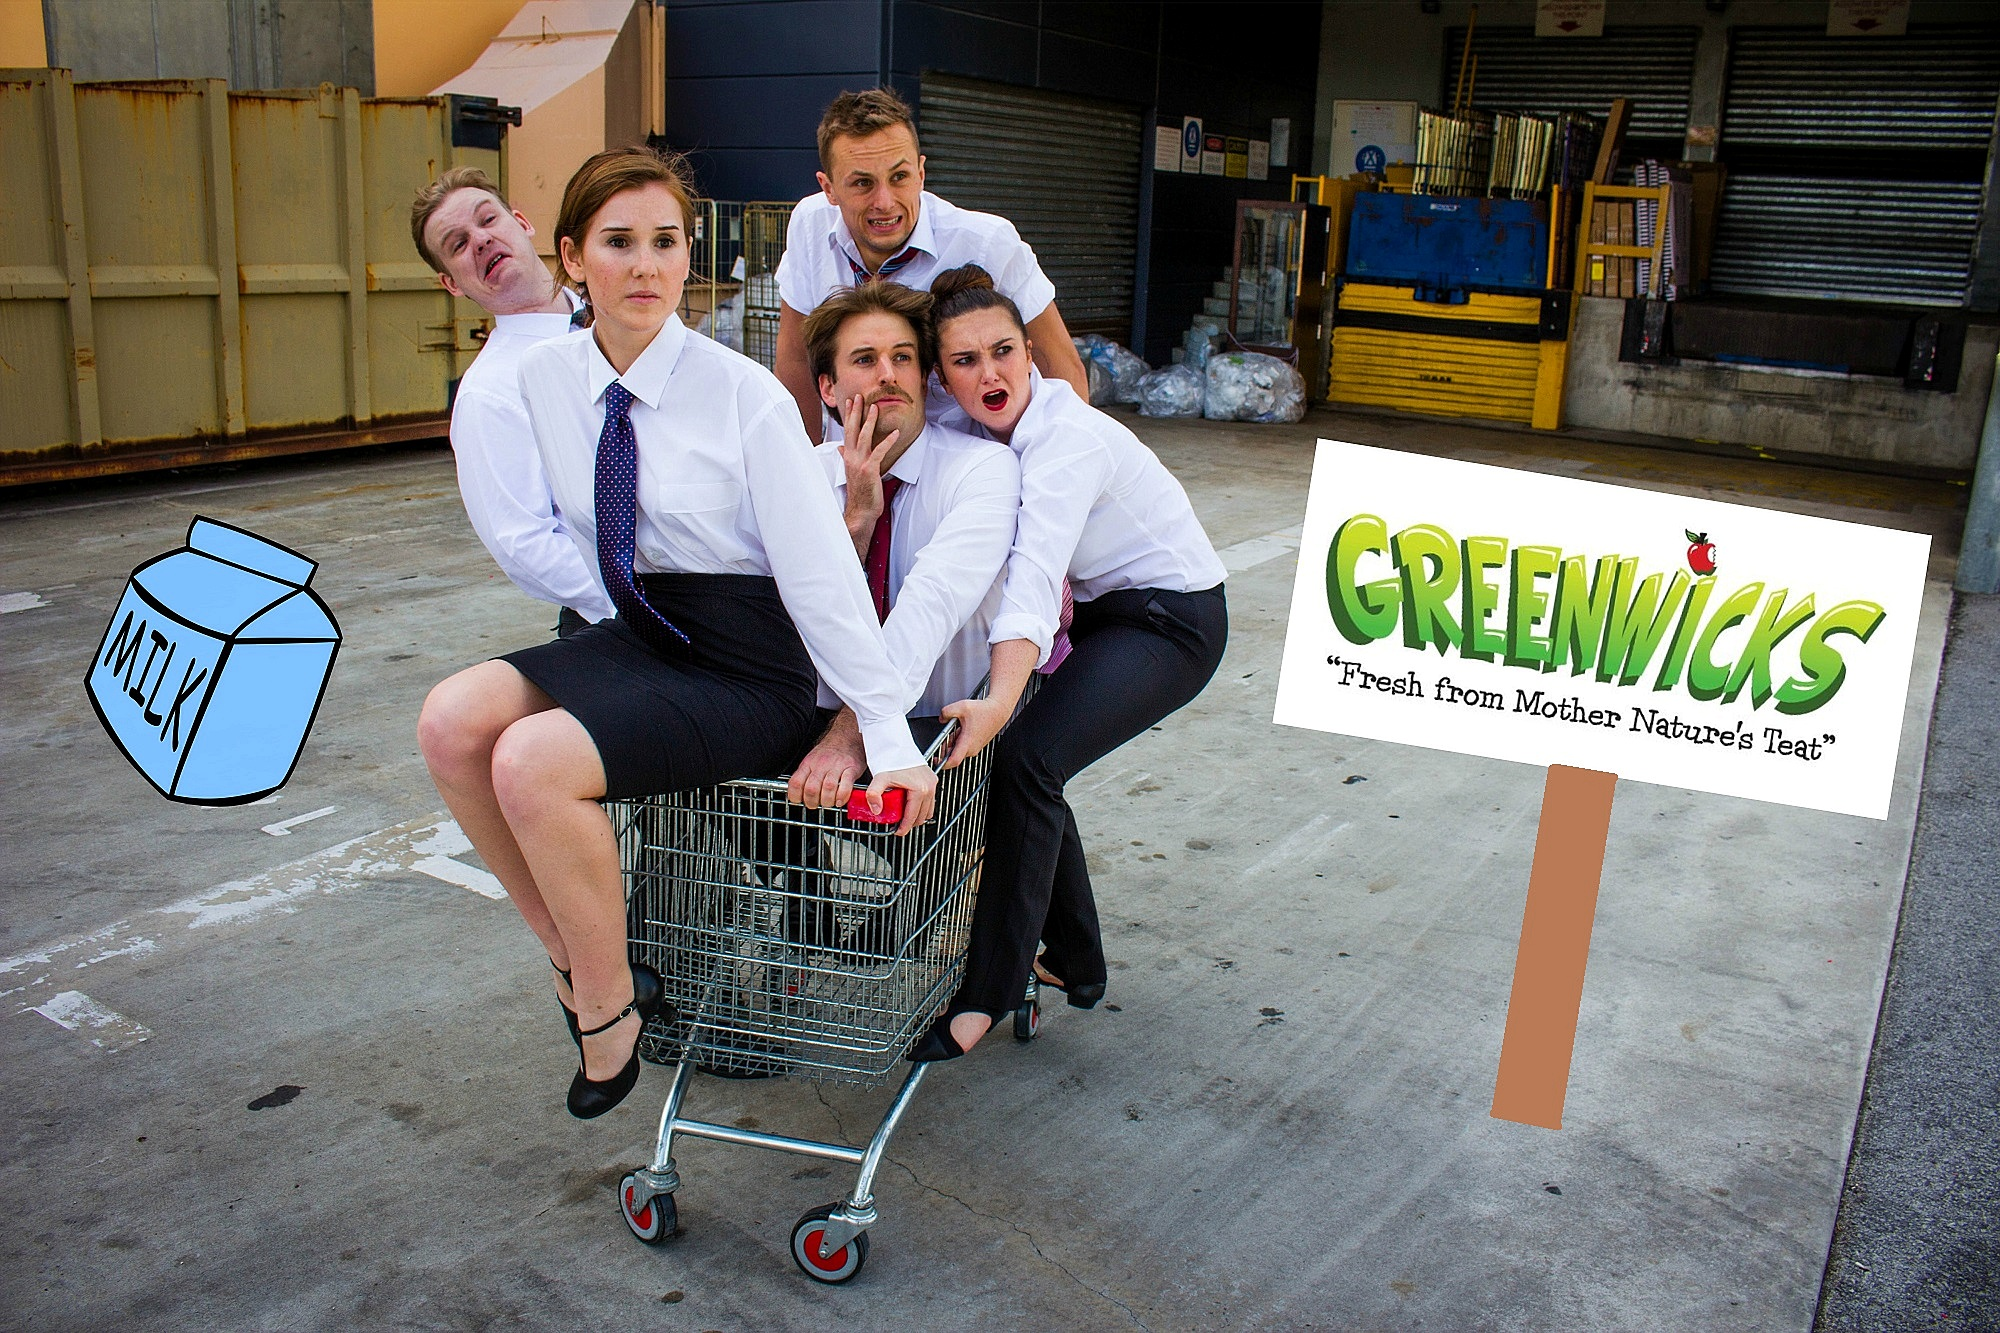 Jacob Anderson, left, Michaela Sheehy, James Marzec, Oliver Bourne and Amy Glendenning are appearing in  Greenwicks , a comedy musical about a dysfunctional supermarket. Pictures: Tania Morrow